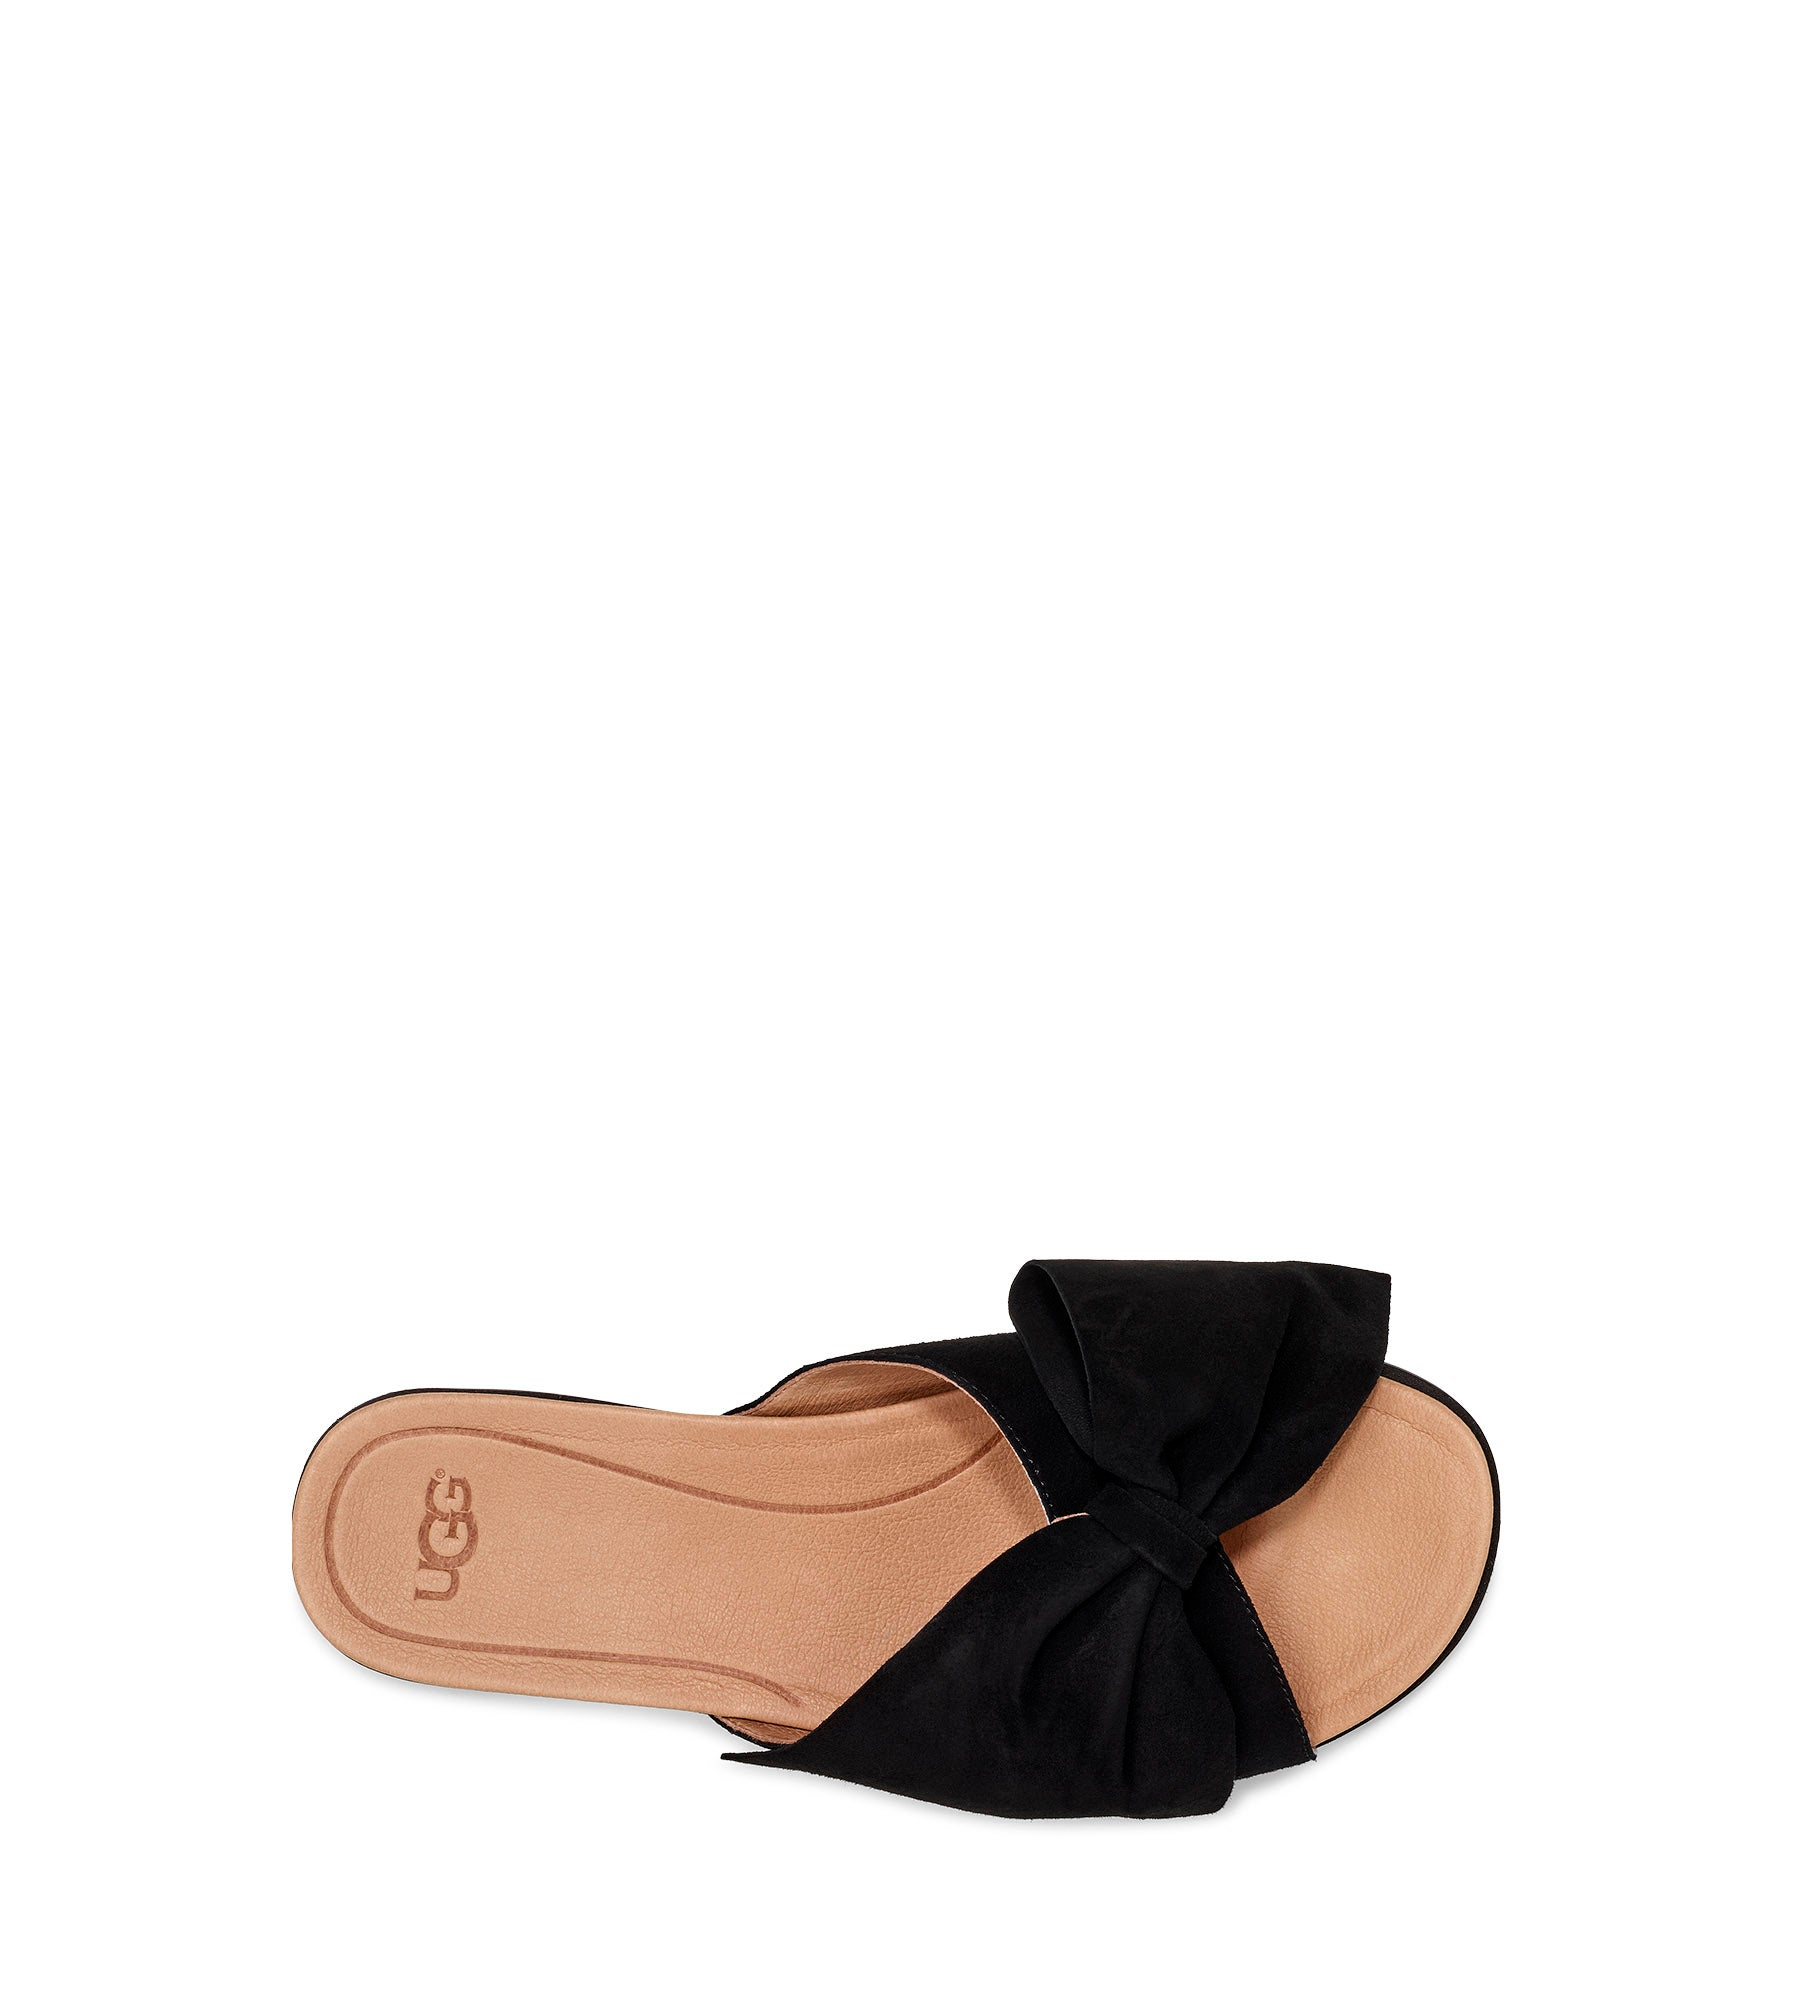 Lds Joan II black casual slide sandal